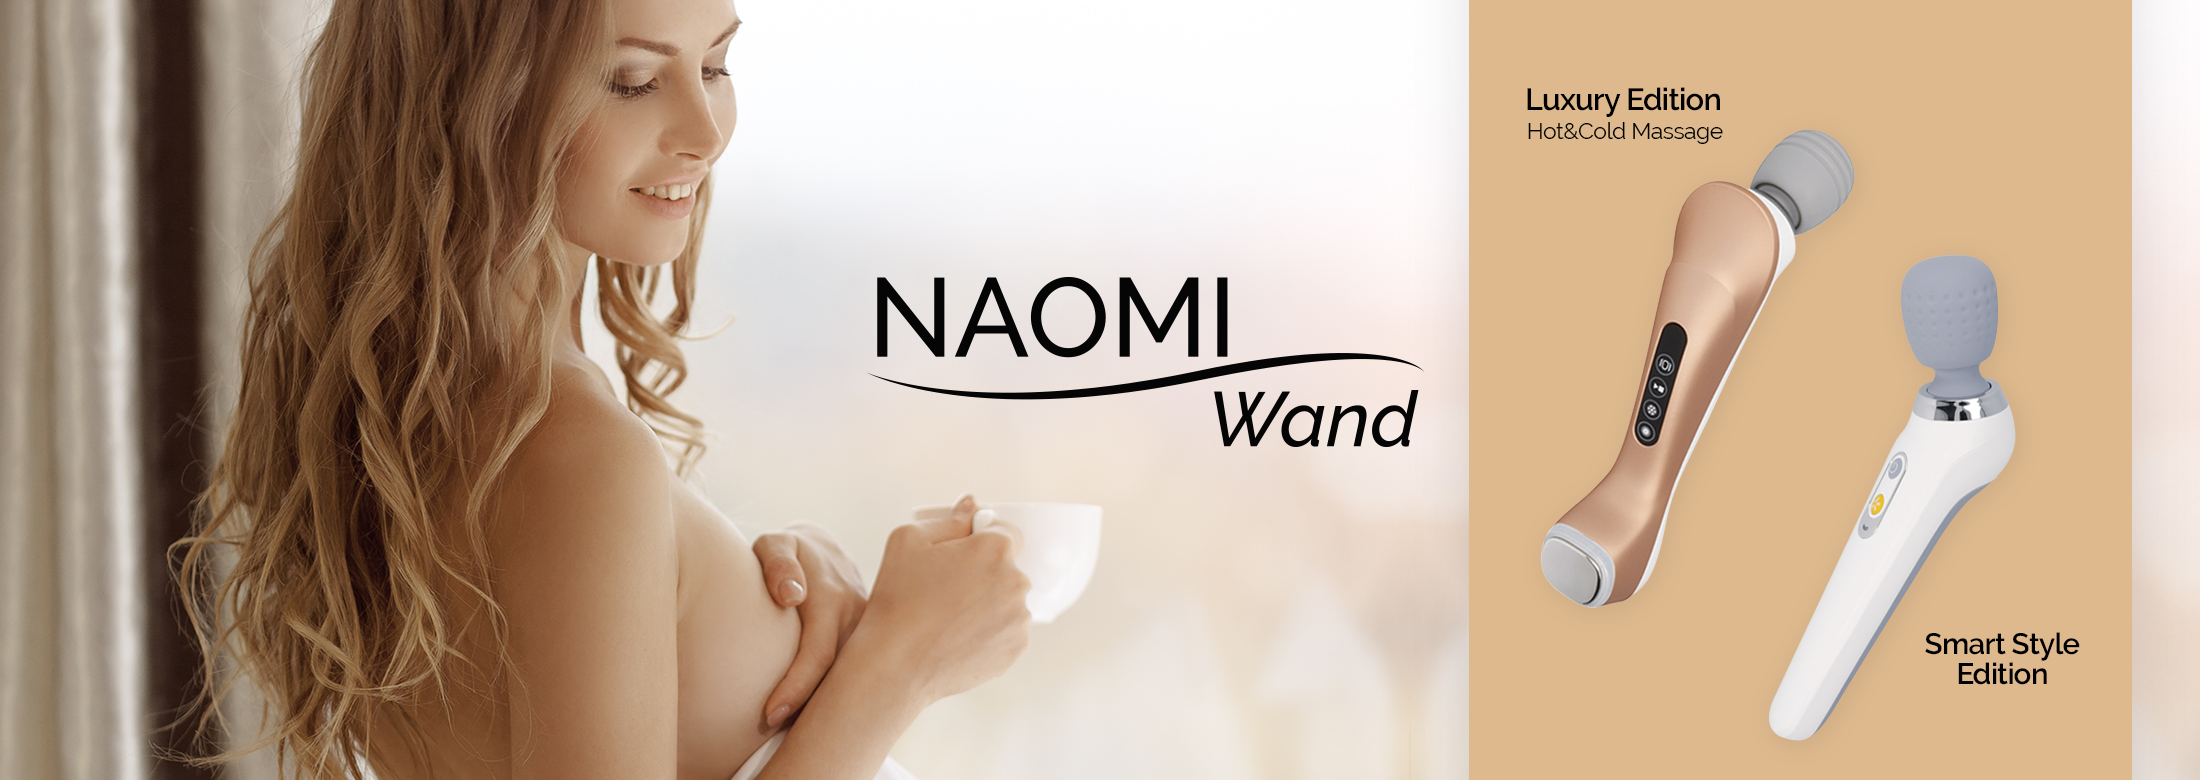 LIST OF PRODUCTS BY MANUFACTURER NAOMI WAND